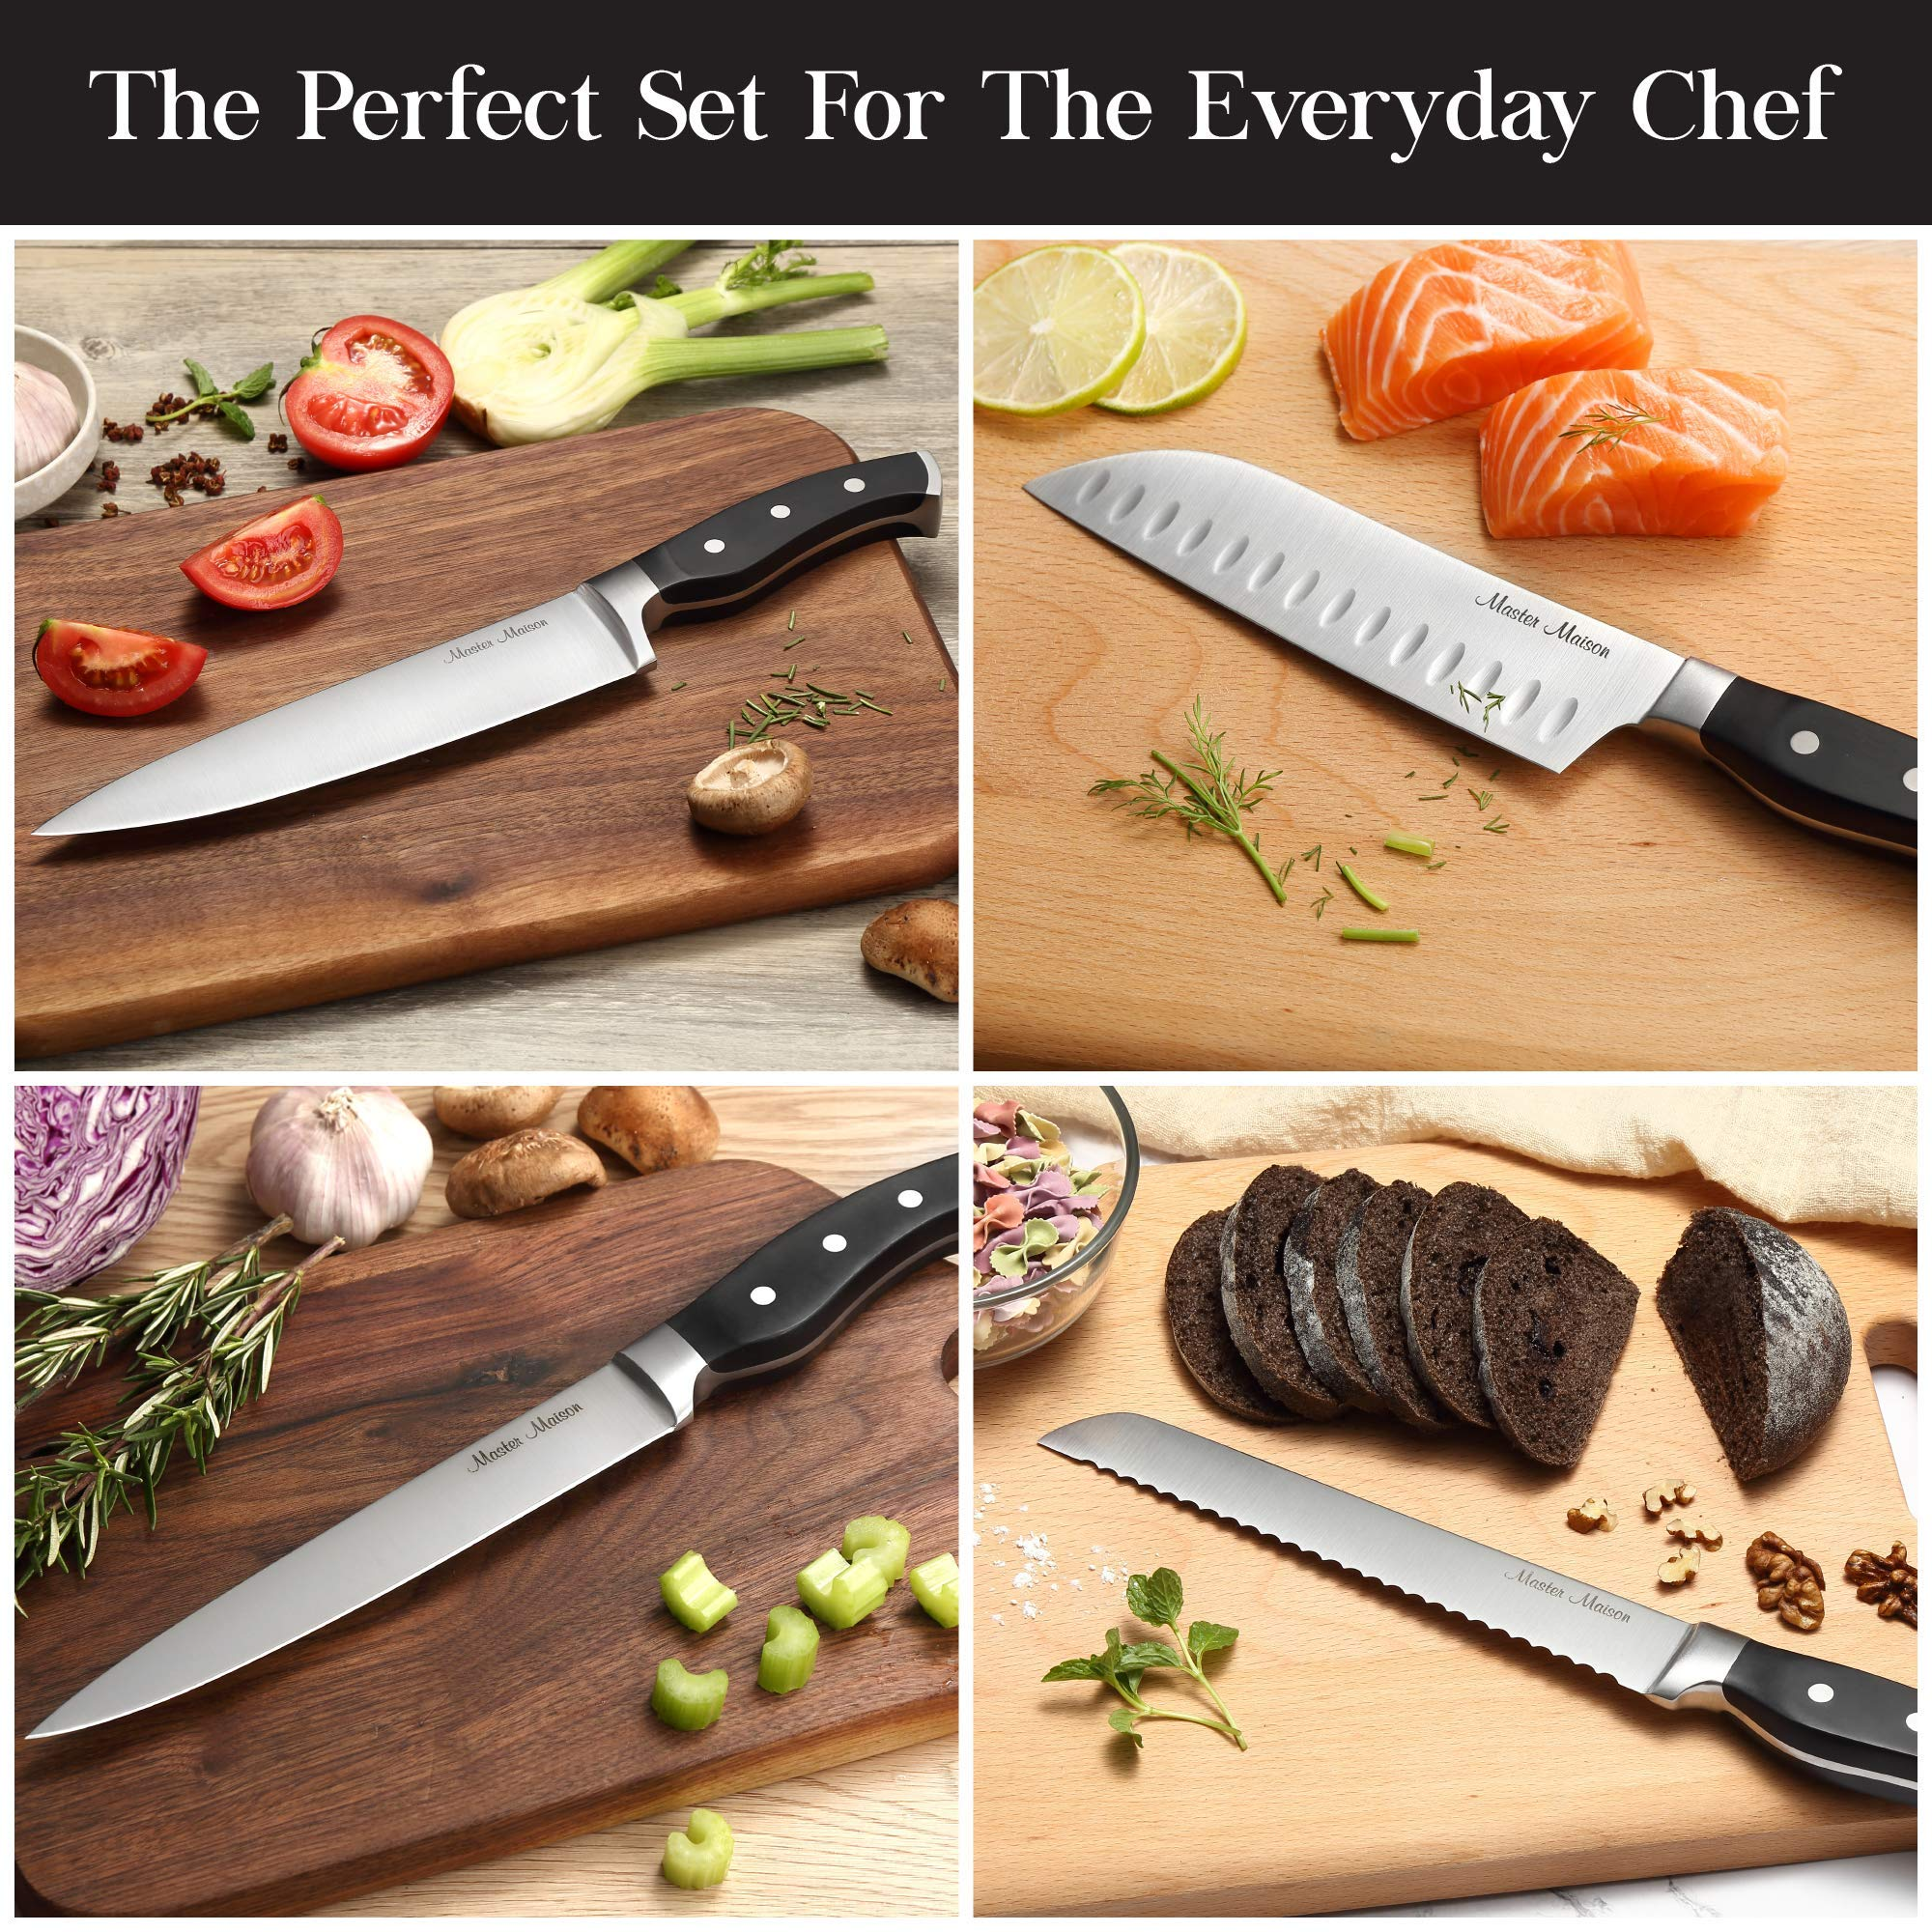 19-Piece Premium Kitchen Knife Set With Wooden Block | Master Maison German Stainless Steel Cutlery With Knife Sharpener & 8 Steak Knives by Master Maison (Image #9)